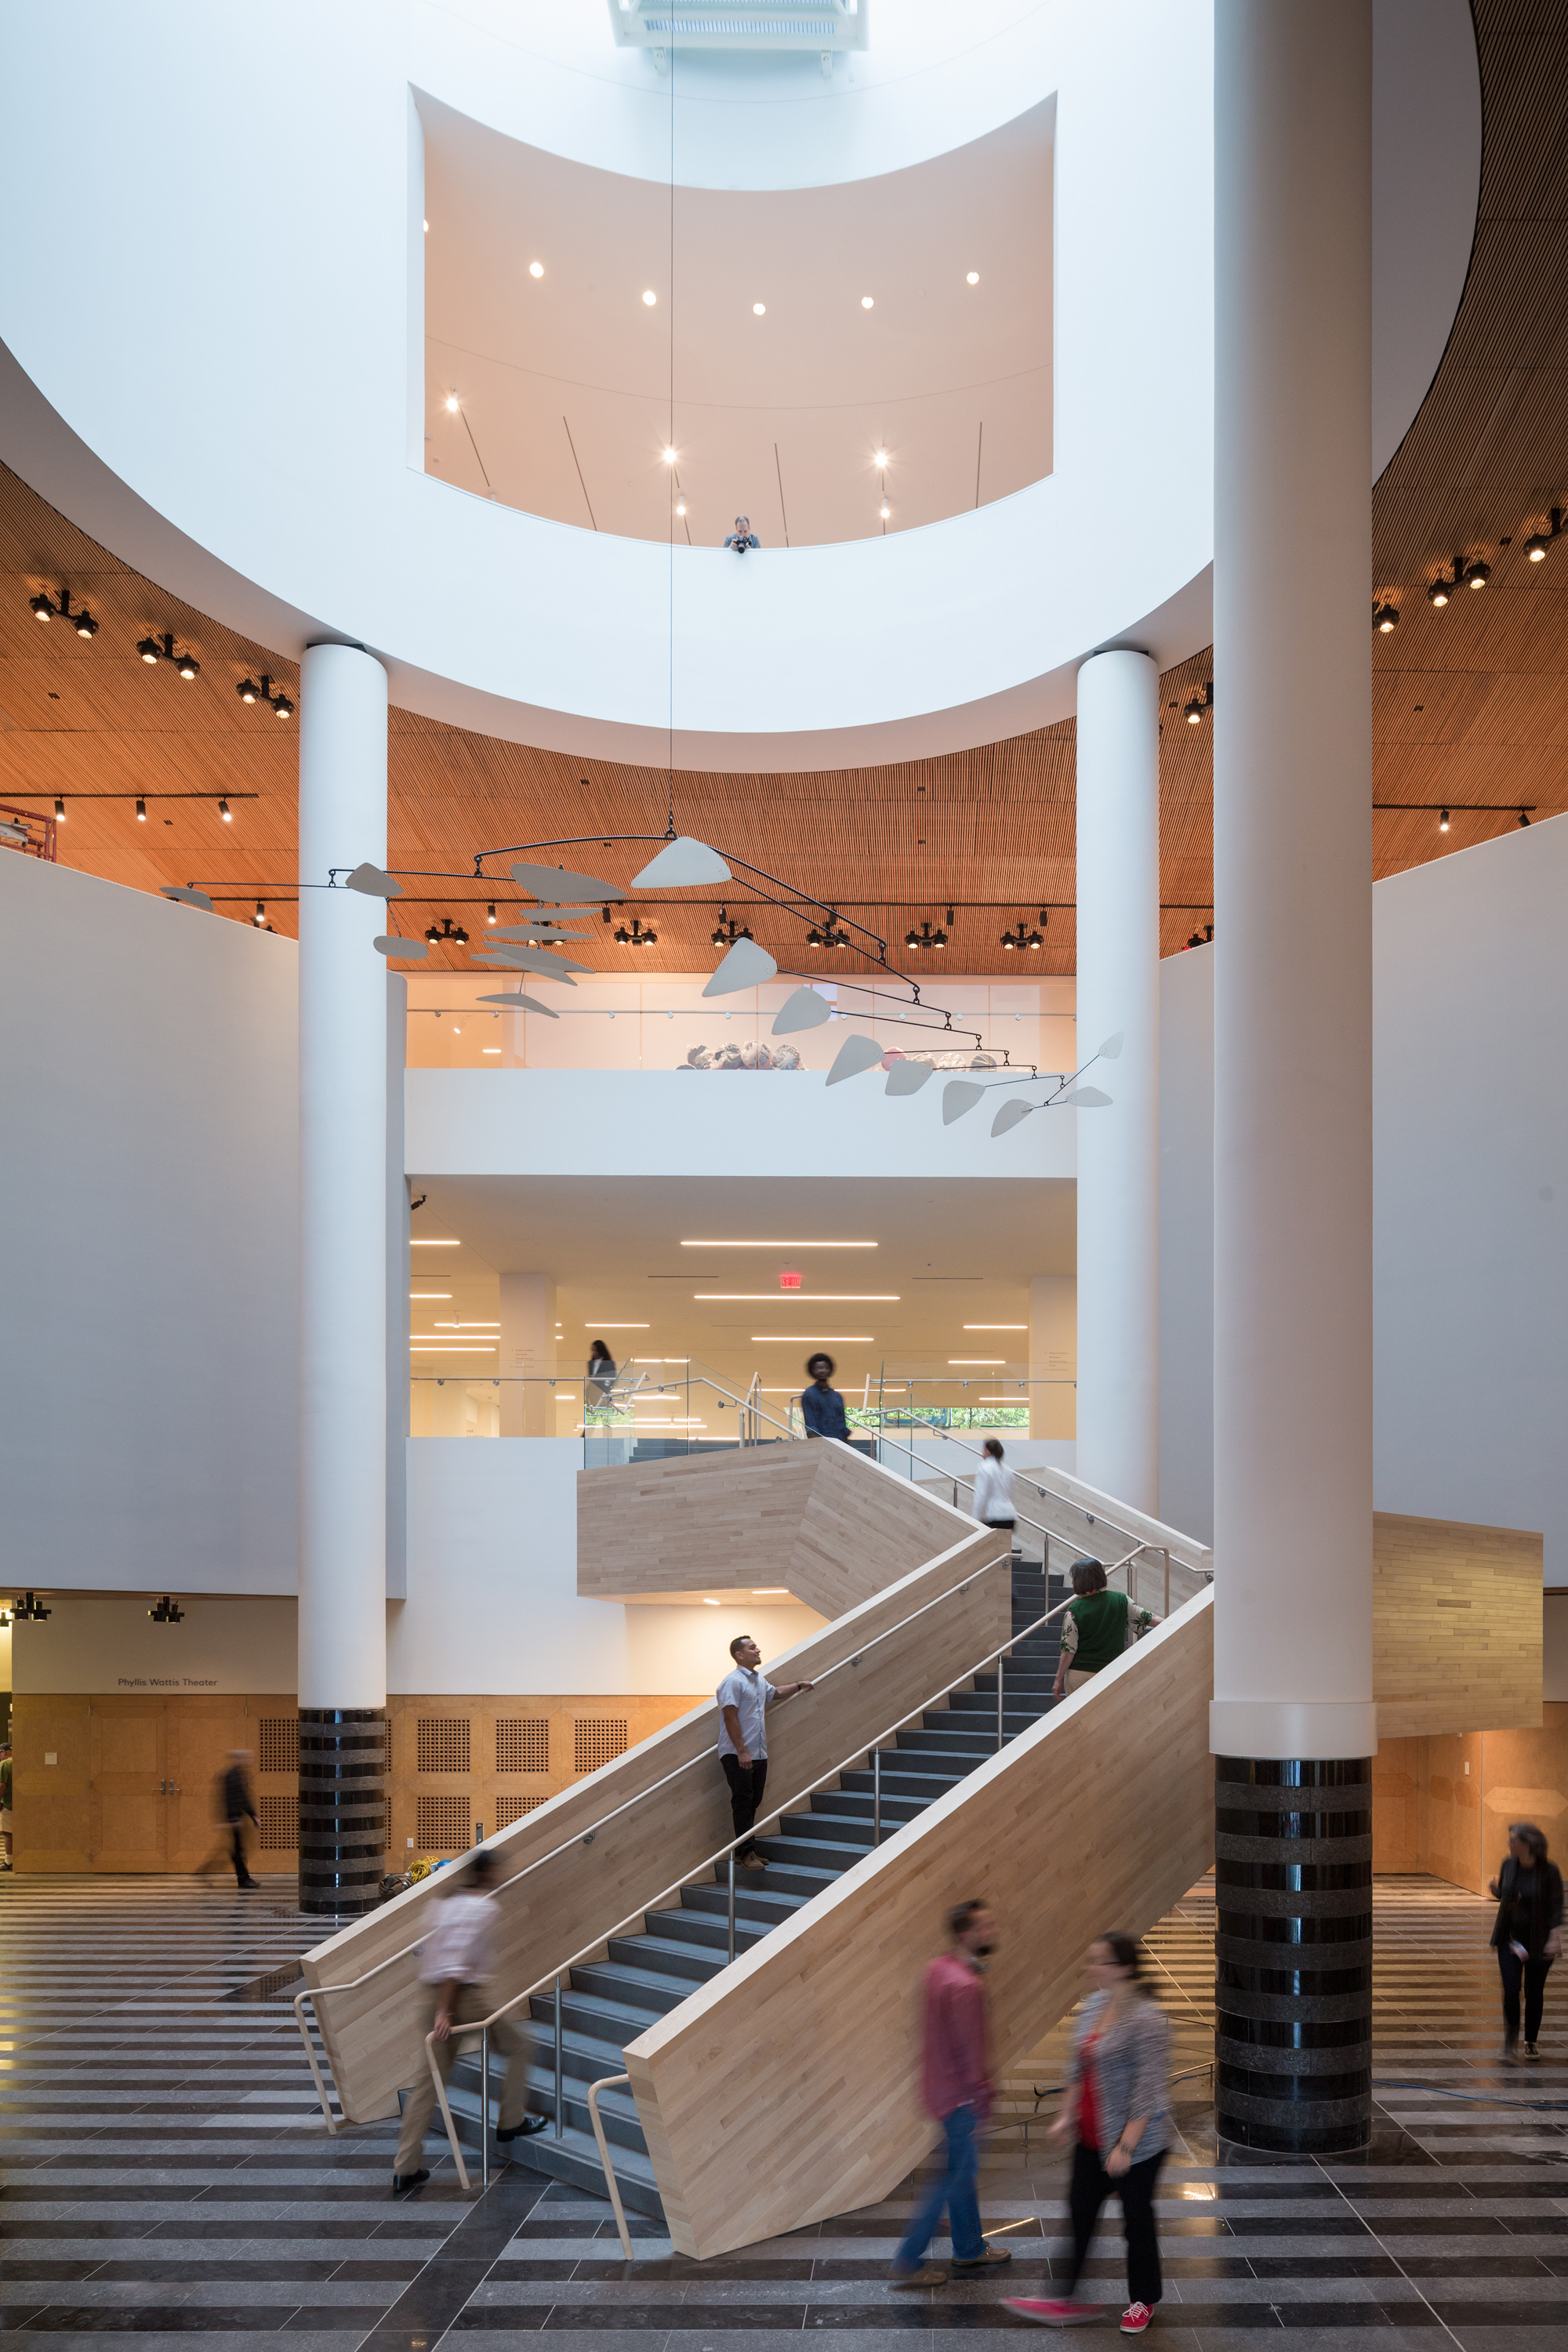 6. Alexander Calder's Untitled (1963) on view in the Evelyn and Walter Haas, Jr. Atrium at the new SFMOMA; photo © Iwan Baan, courtesy SFMOMA.jpg